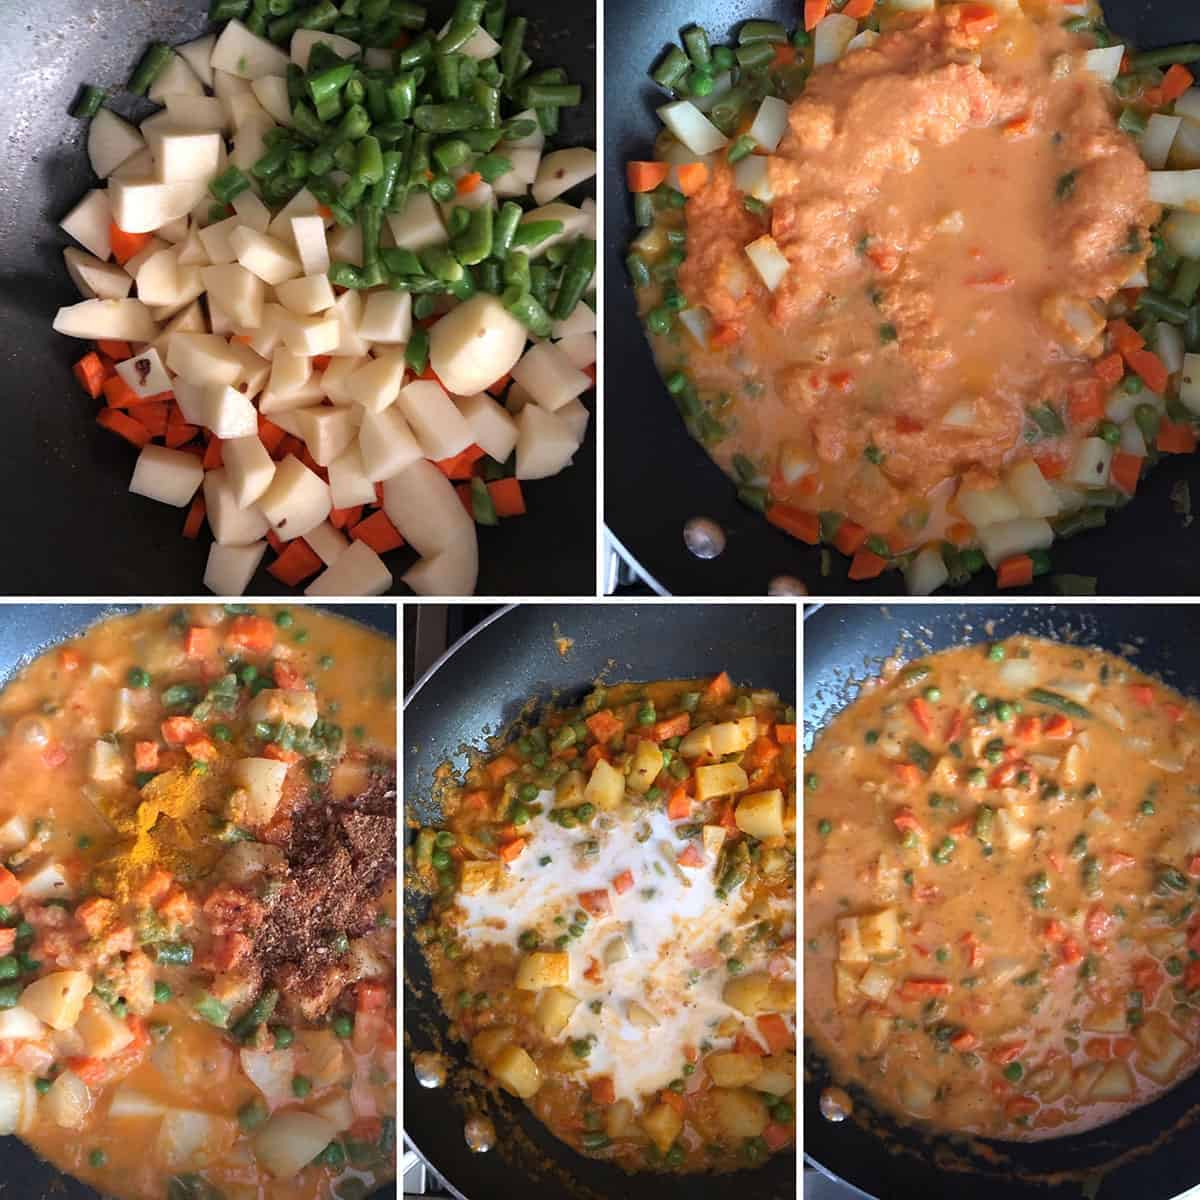 Step by step photos showing the cooking of vegetables with coconit milk